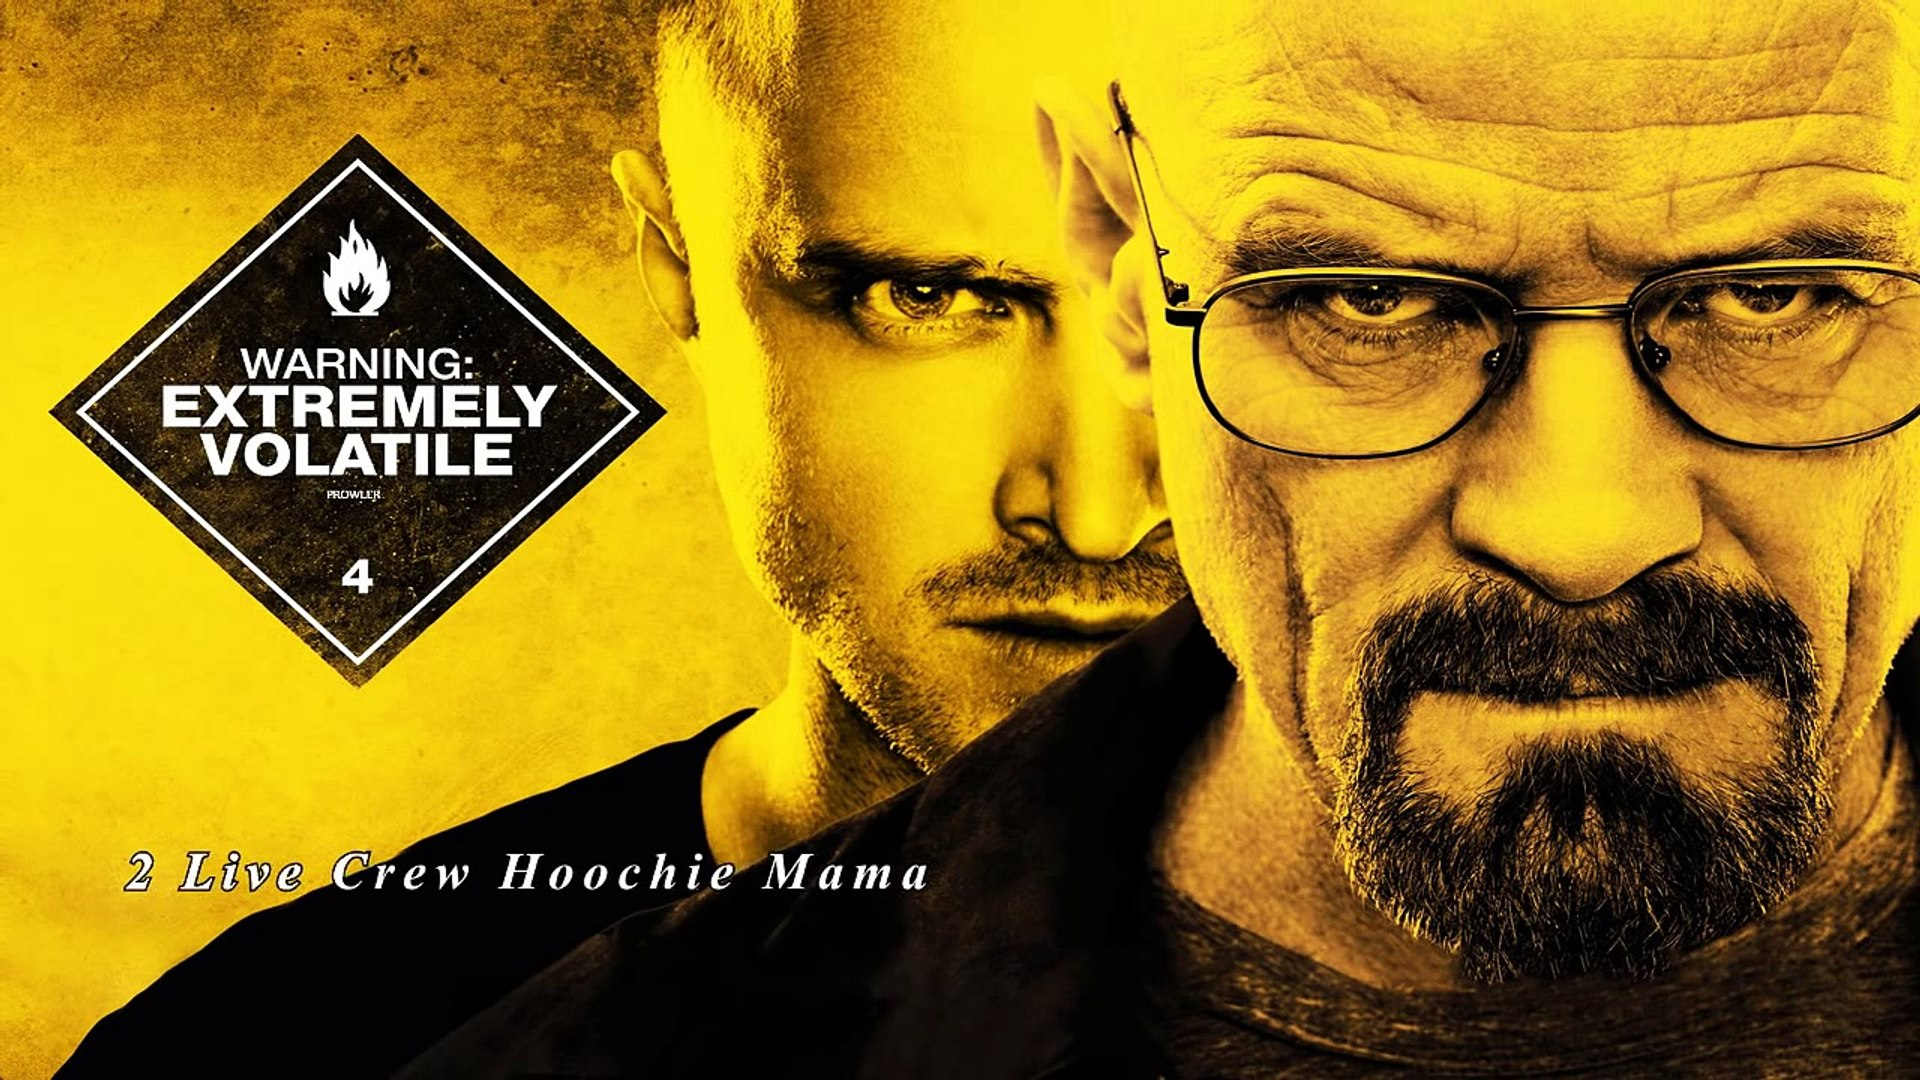 Breaking Bad S4 2011 2 Live Crew Hoochie Mama Soundtrack Ost Video Dailymotion Friday (original motion picture soundtrack). breaking bad s4 2011 2 live crew hoochie mama soundtrack ost